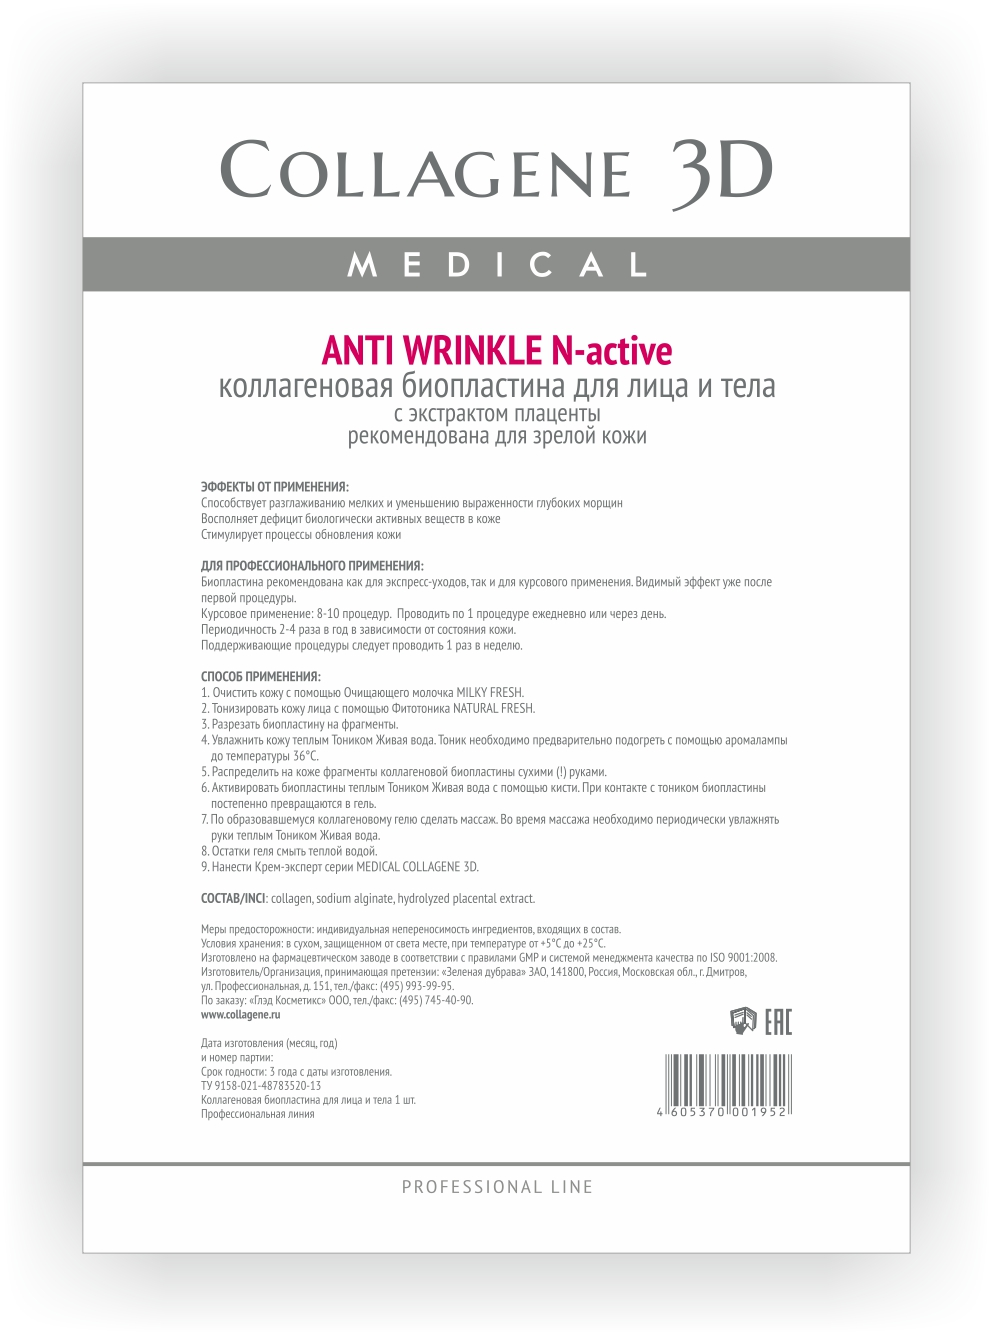 MEDICAL COLLAGENE 3D Биопластины коллагеновые с плацентолью для лица и тела Anti Wrinkle А4